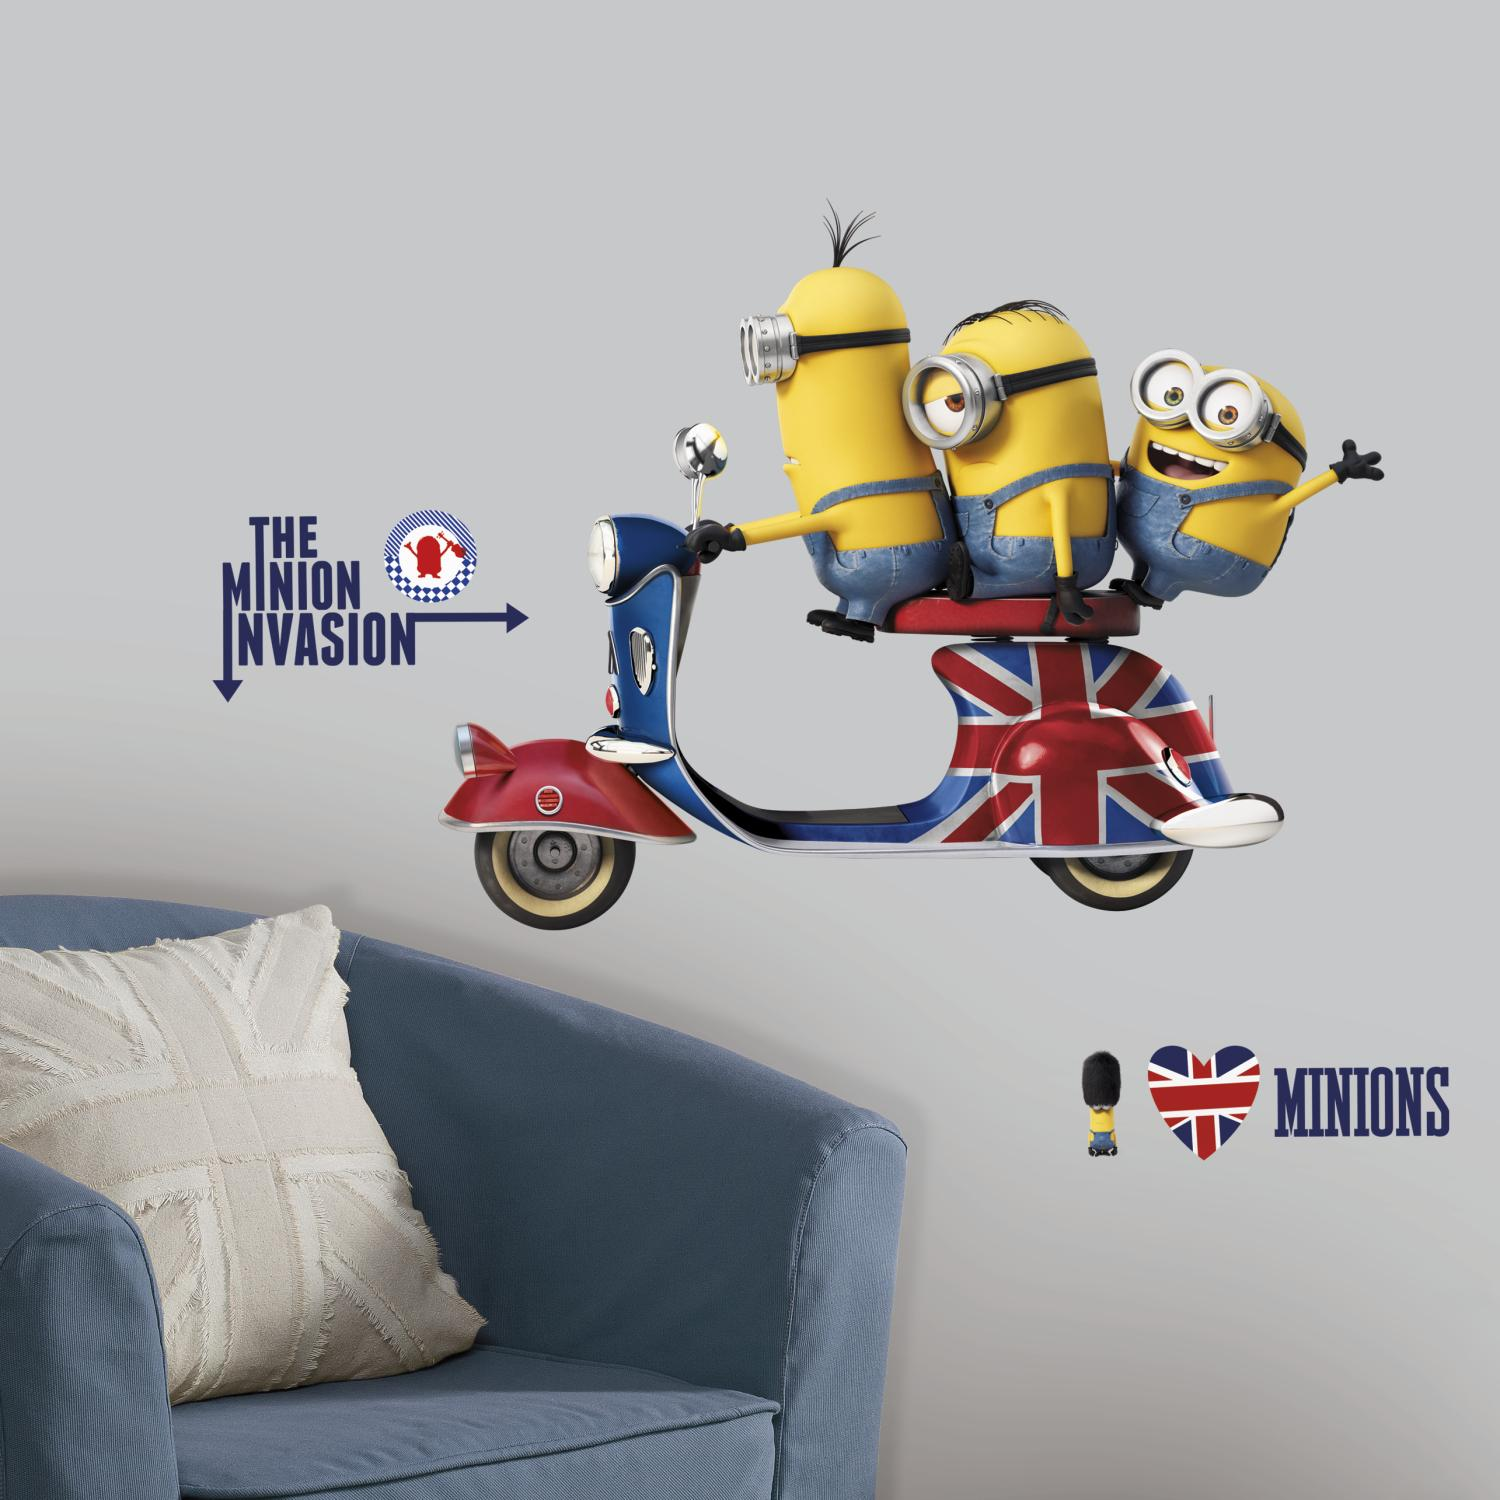 Roommates rmk3002gm minions the movie peel and stick giant wall minions wall decals minions wall stickers minions movie view larger roommates decor roommates wall decals amipublicfo Choice Image